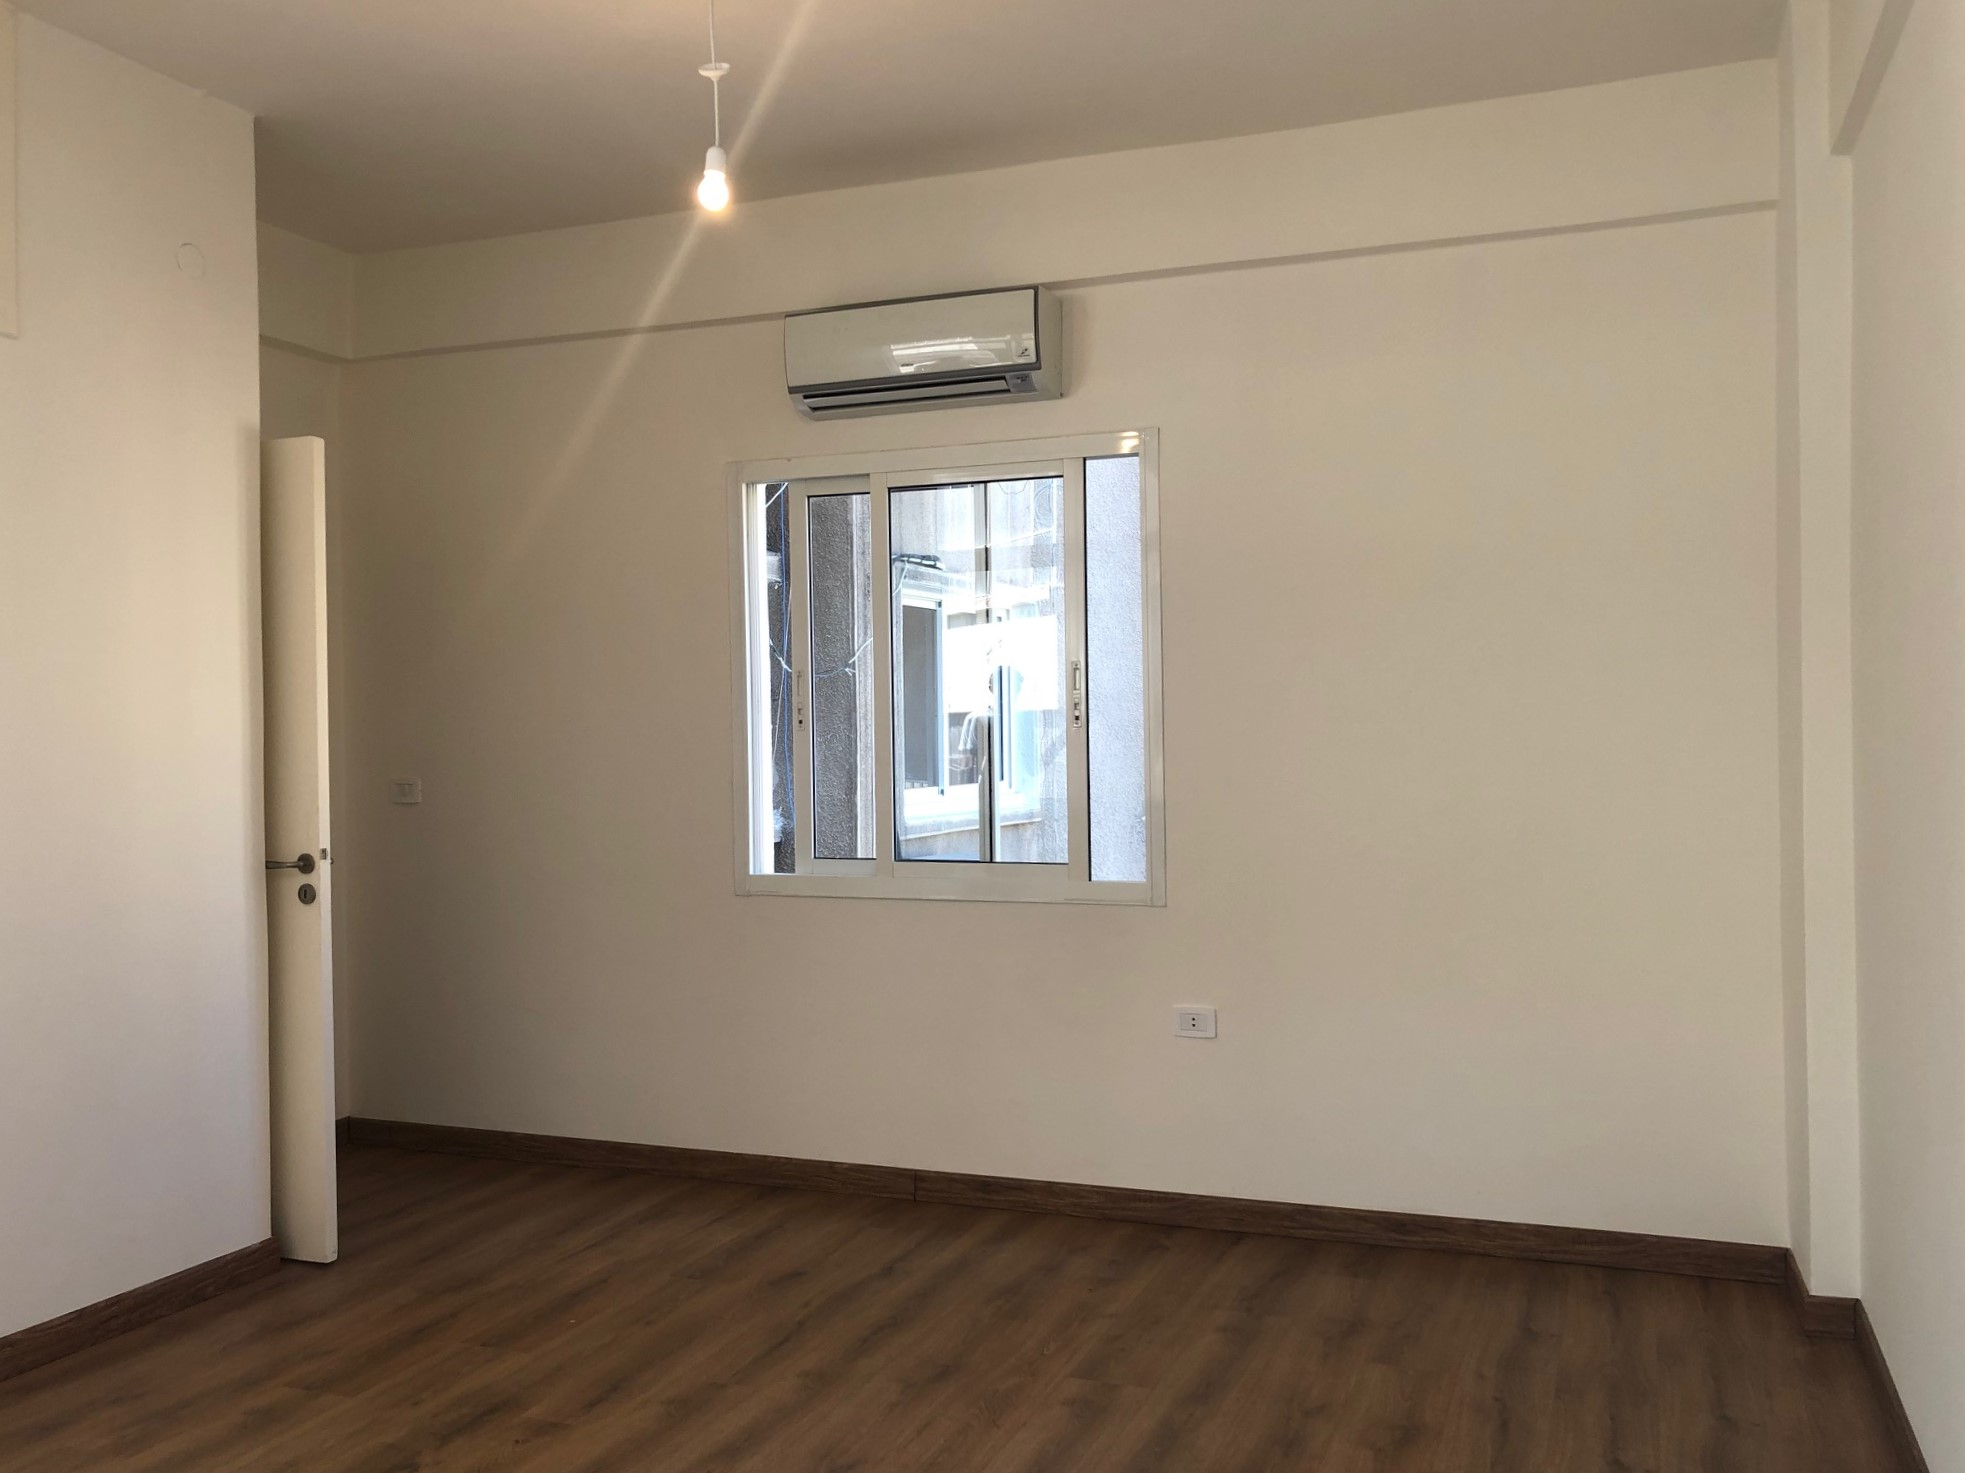 Office for Rent, Ashrafieh, 120 sqm,  18,000 USD